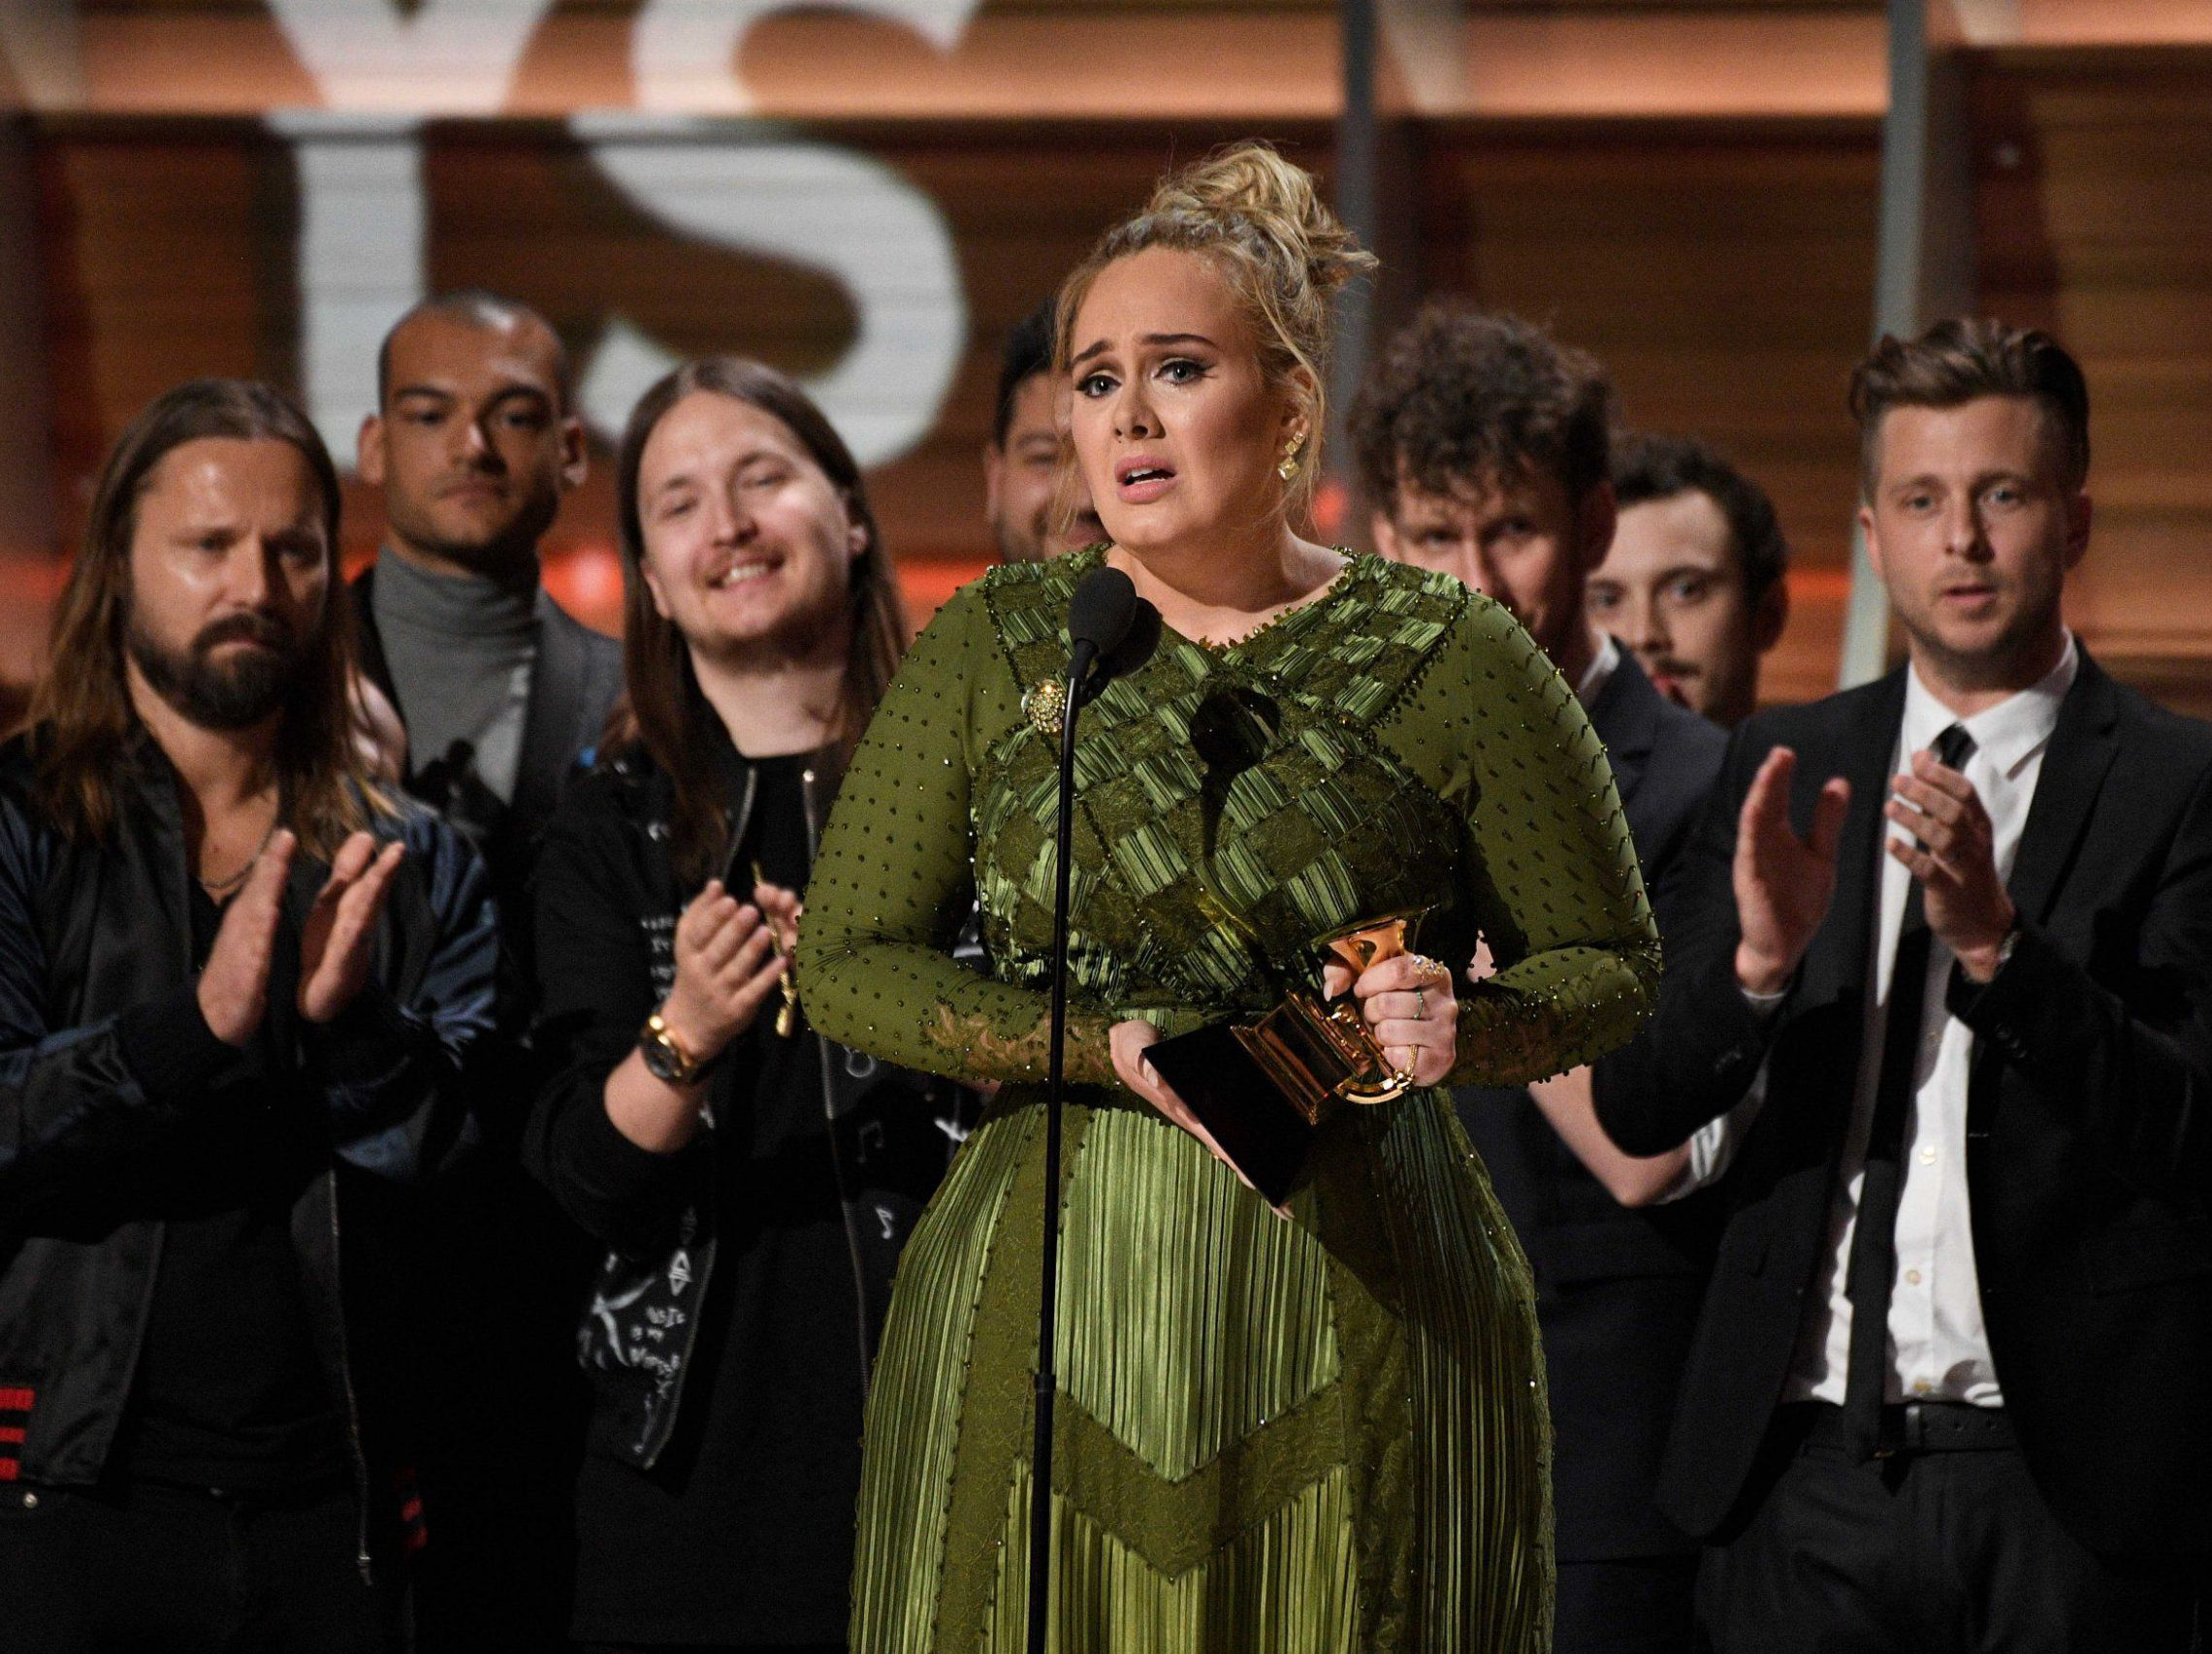 Grammy Awards 2017: People are peaved Beyonce was 'robbed' of Album Of The Year award by Adele